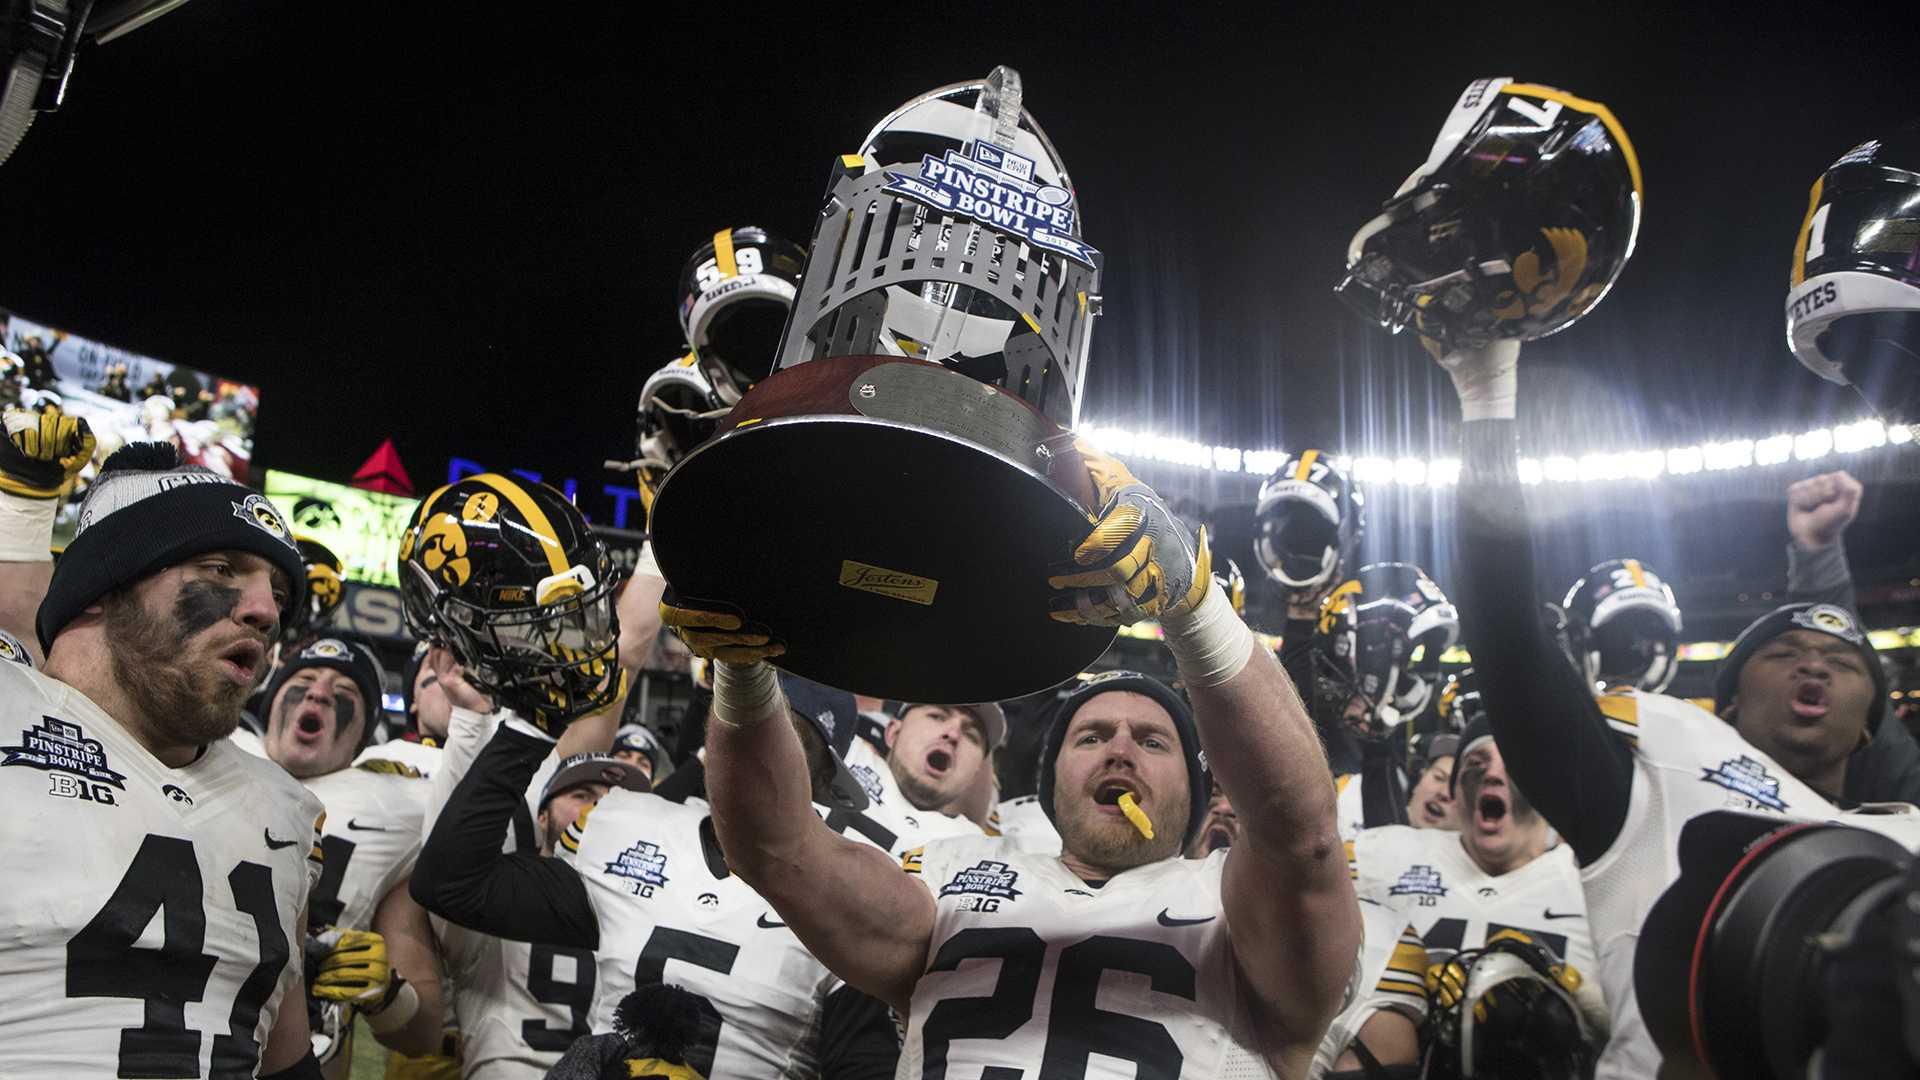 Iowa's Kevin Ward (26) holds up the New Era Pinstripe Bowl trophy after the Hawkeyes beat Boston College in the Pinstripe Bowl at Yankee Stadium in New York on Wednesday, Dec. 27. The Hawkeyes went on to win 27-20.